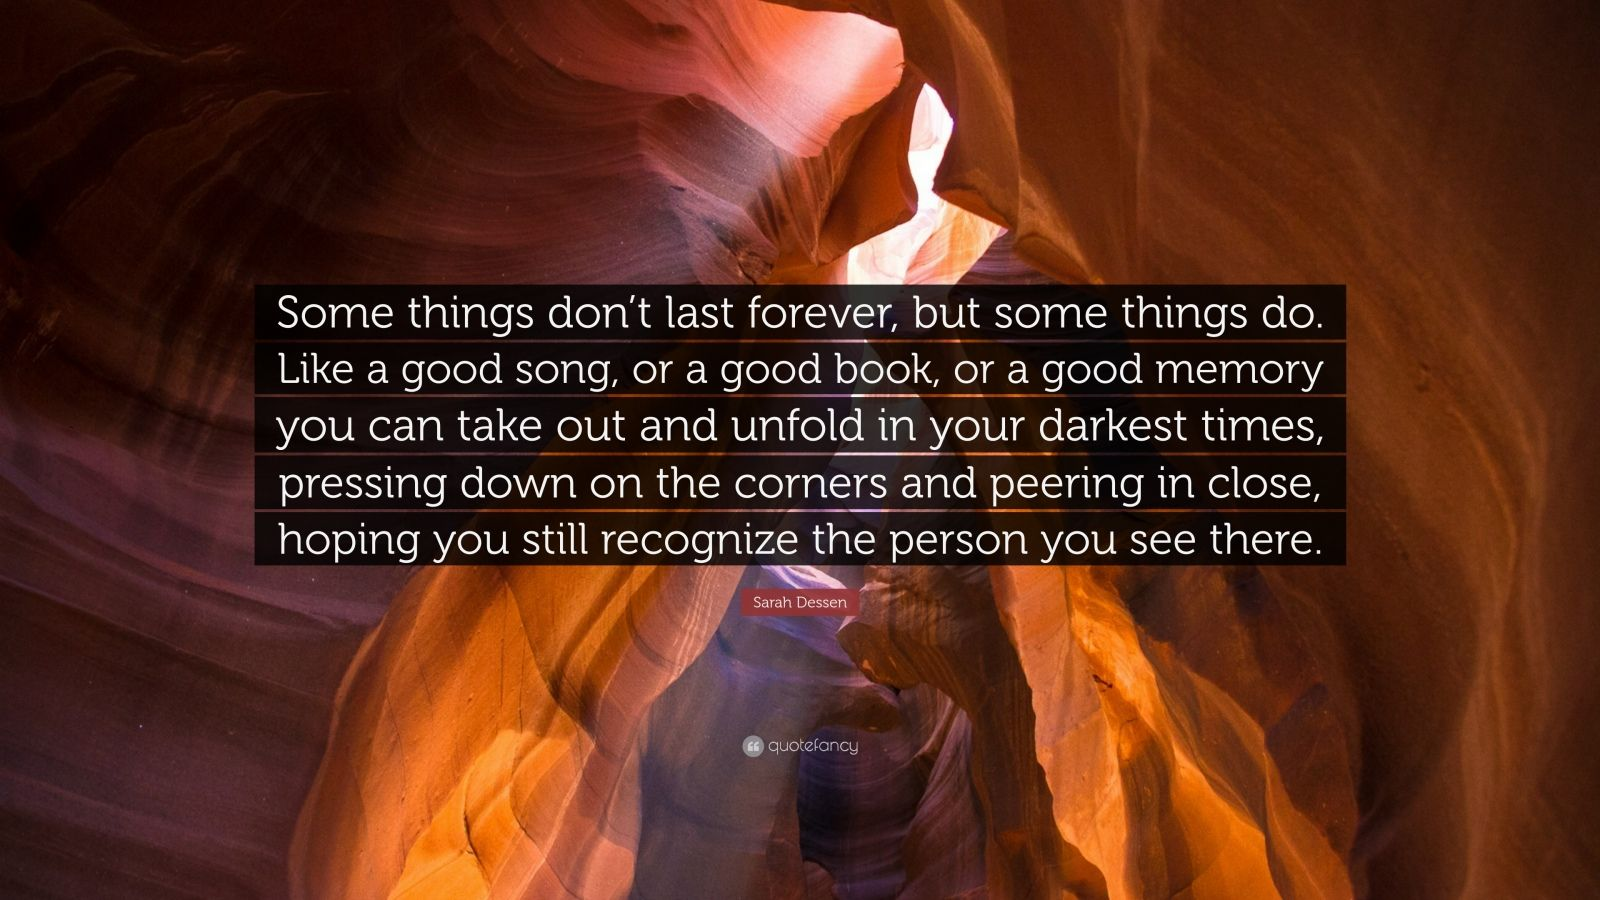 """Sarah Dessen Quote: """"Some things don't last forever, but some things do. Like a good song, or a good book, or a good memory you can take out and unfold in your darkest times, pressing down on the corners and peering in close, hoping you still recognize the person you see there."""""""